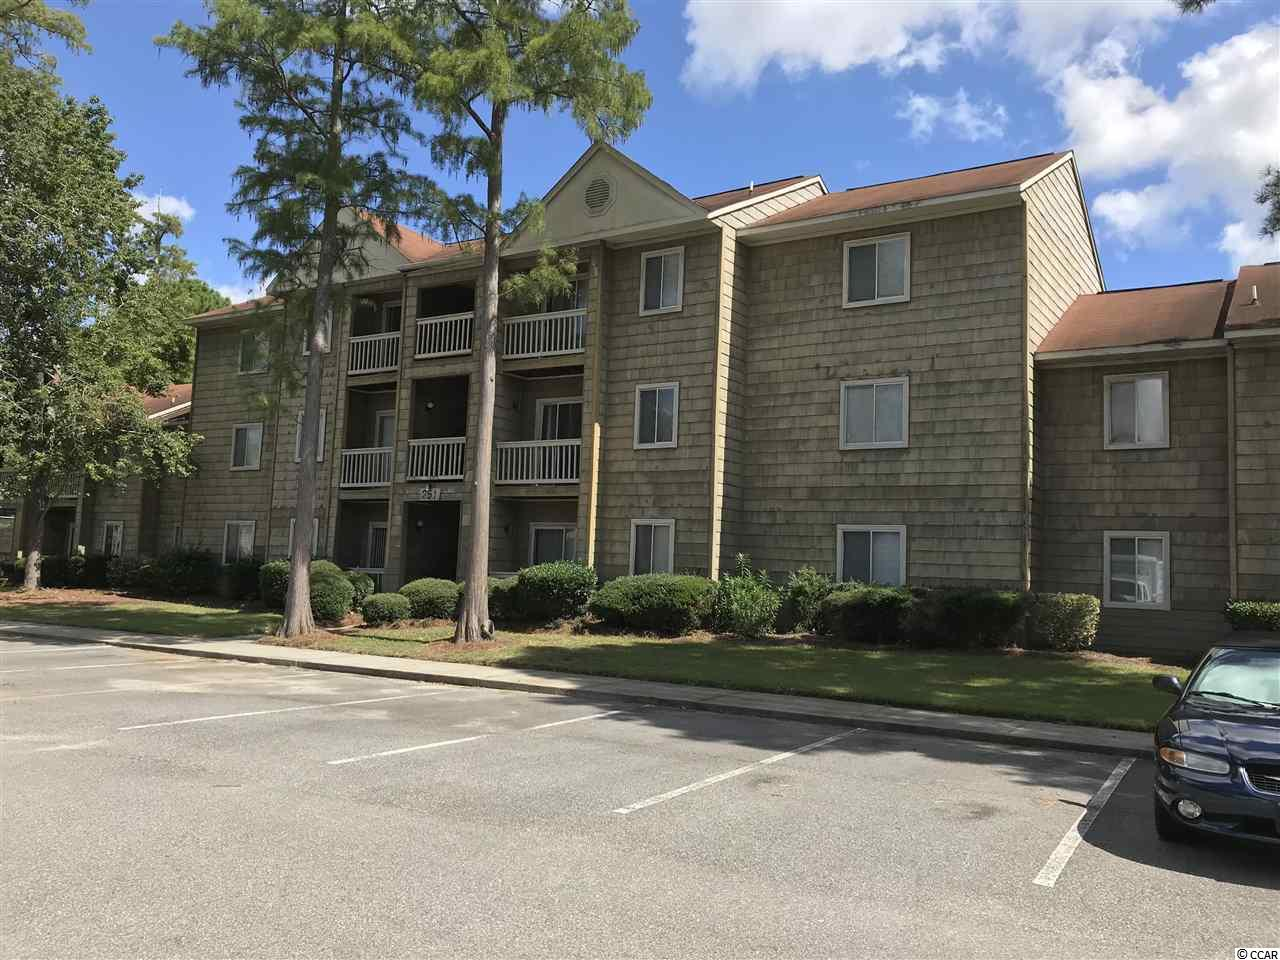 Being offwews fully furnished, but doesn't have to be sold that way. New carpeting throughout. Nicely positioned in the community. Lots of closet space for a condo. Don't miss this one. It won't last long.